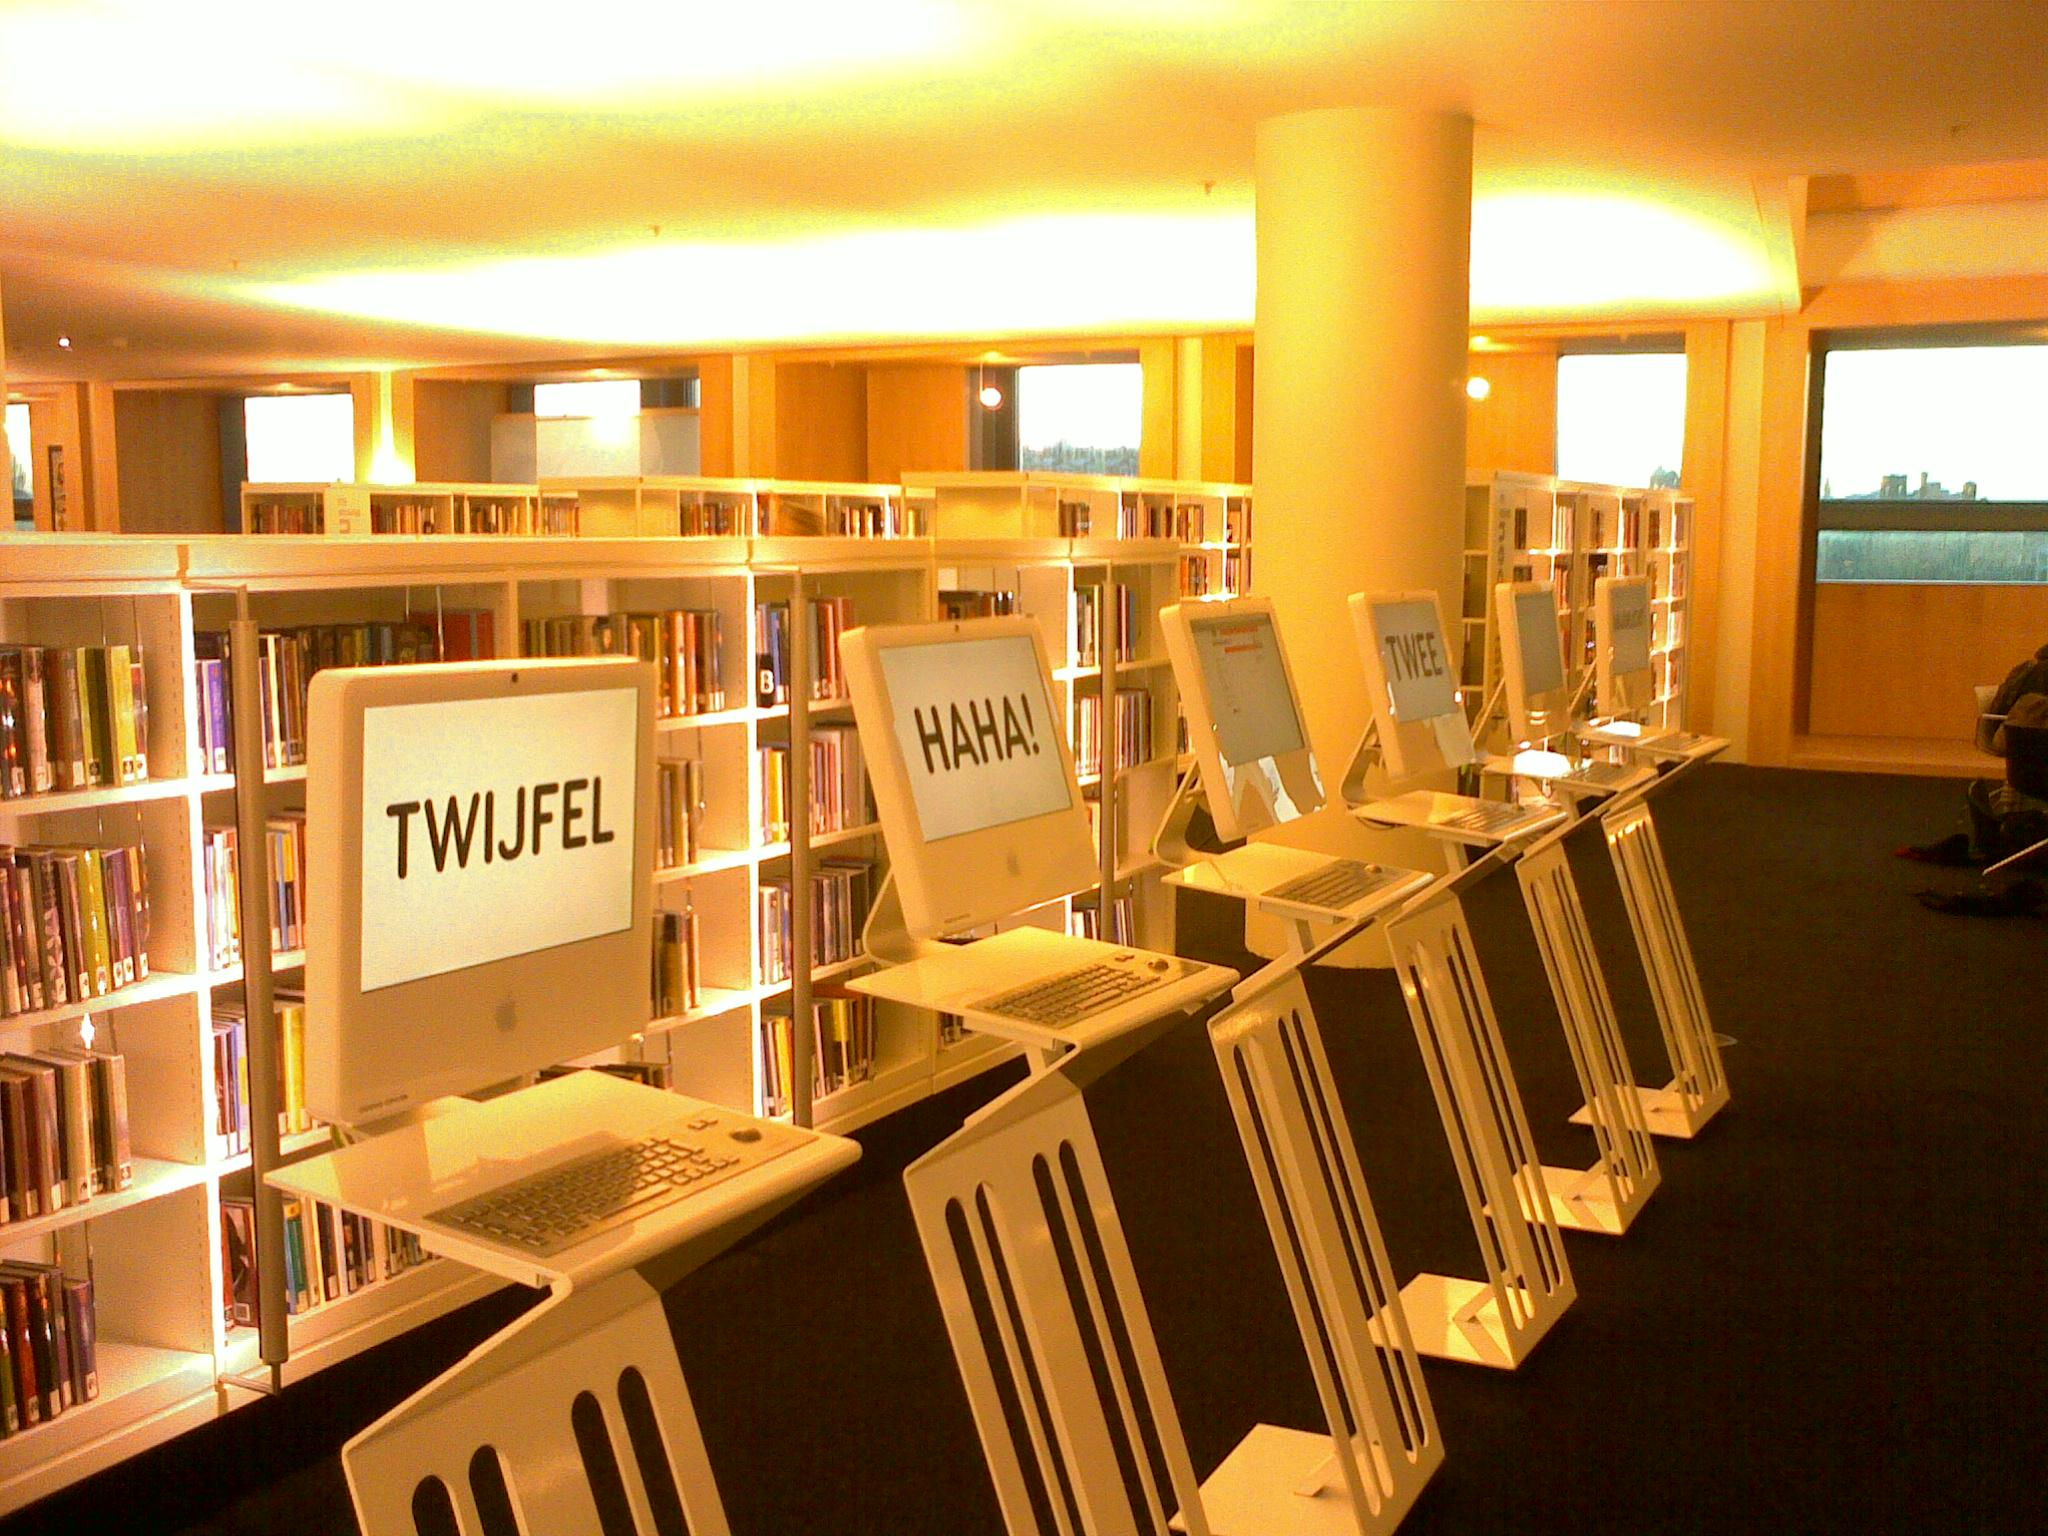 File interieur bibliotheek wikimedia commons for Interieur amsterdam